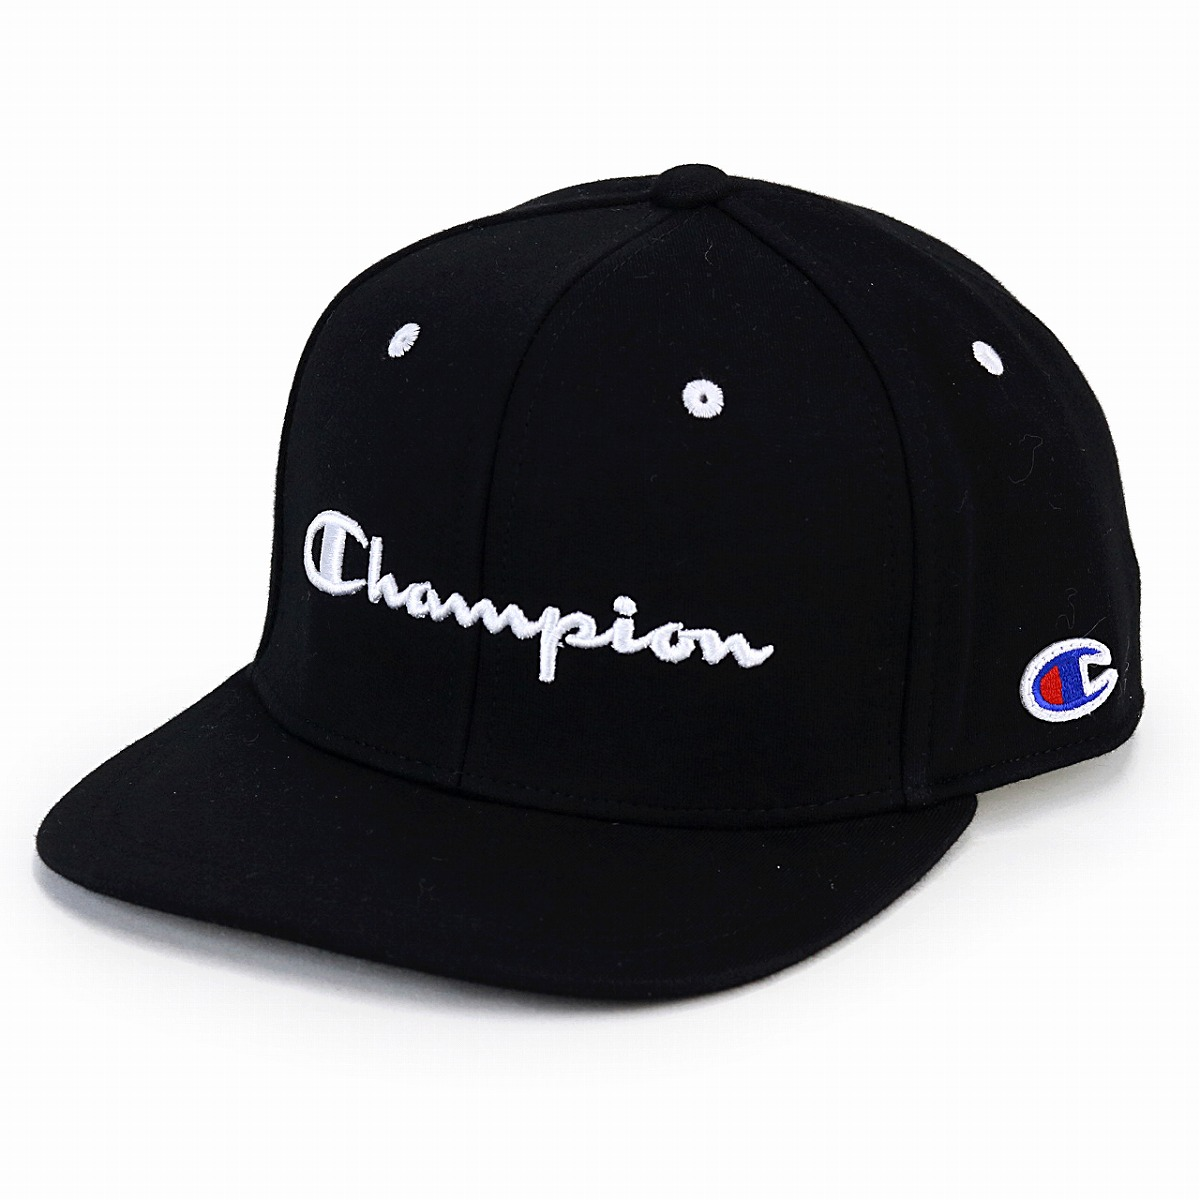 88af231eef3 Champion sweat shirt cap men 6 cap casual hat lady s sports baseball cap  champion cap logo cap adjustable size black black  baseball cap  birthday  present ...